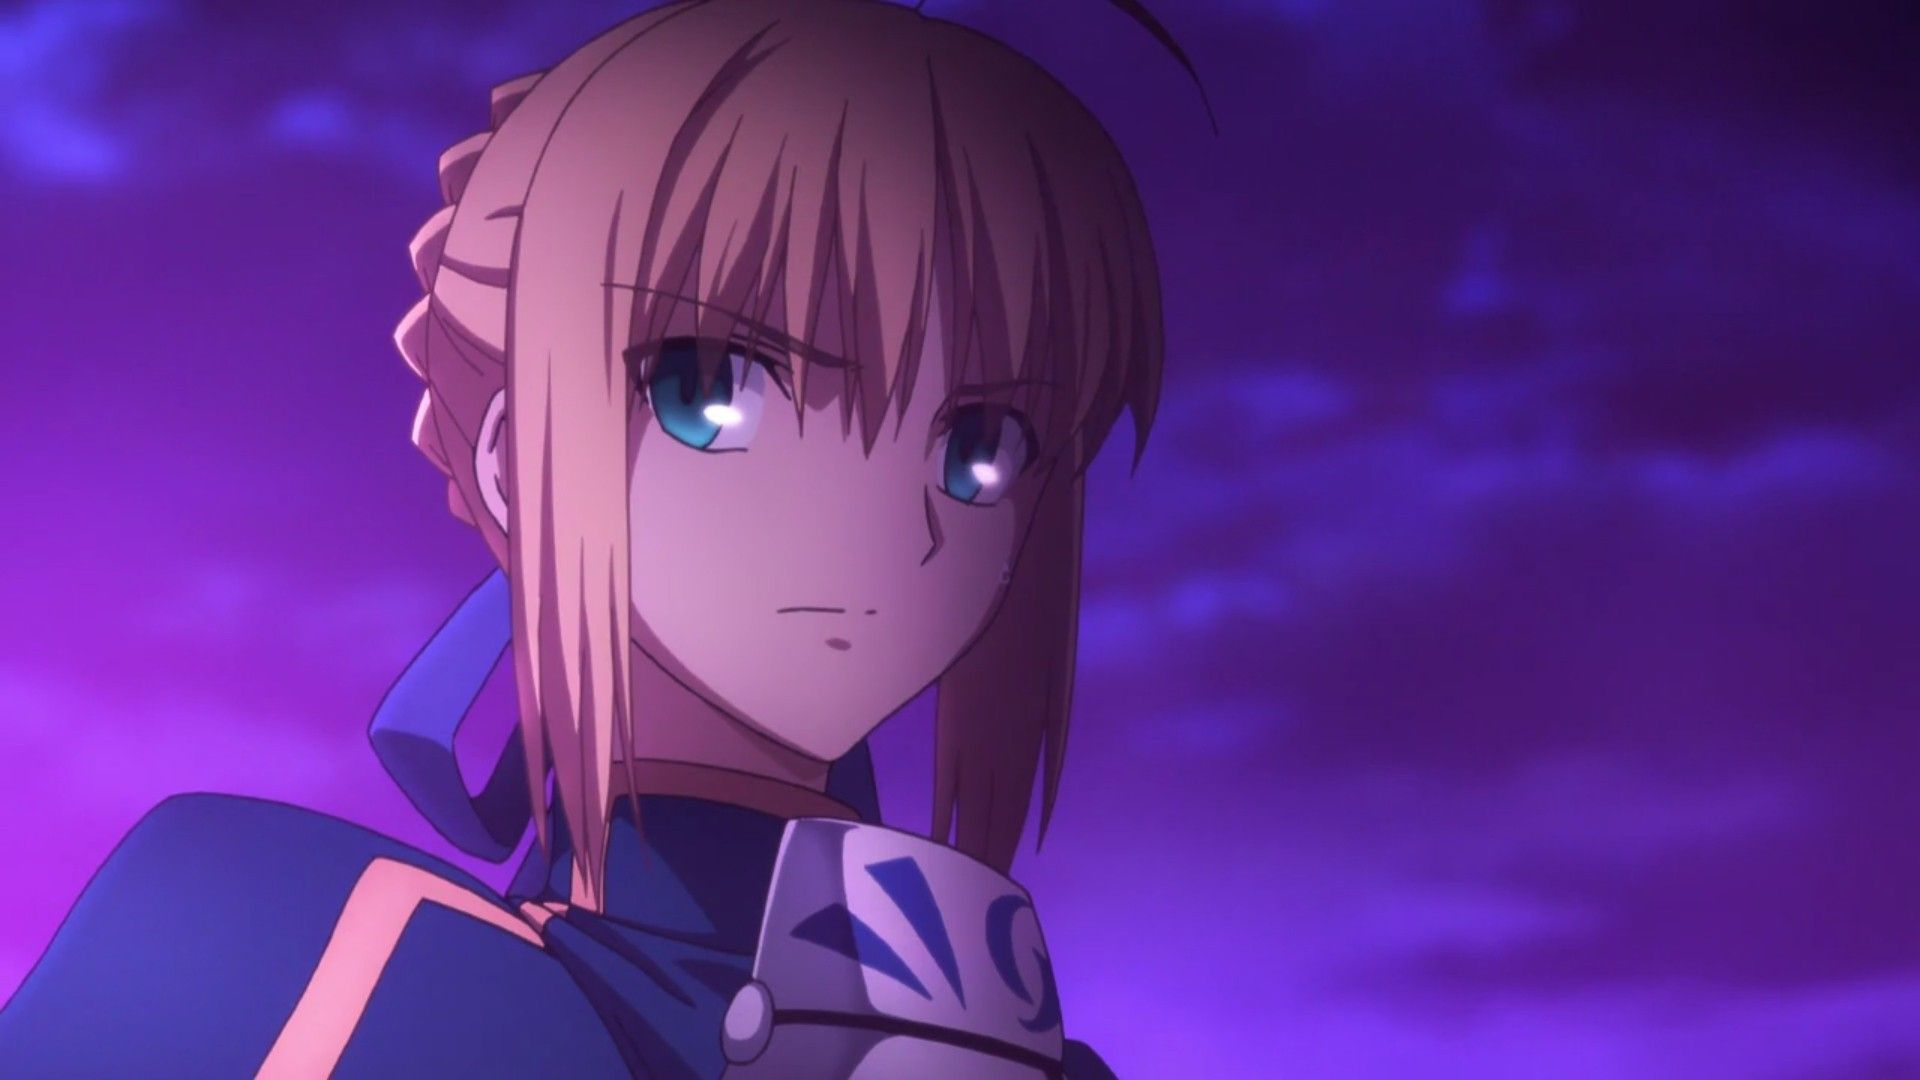 Pin By Shonen Jump Heroes On Fate Series Anime Anime Characters Anime Art Girl